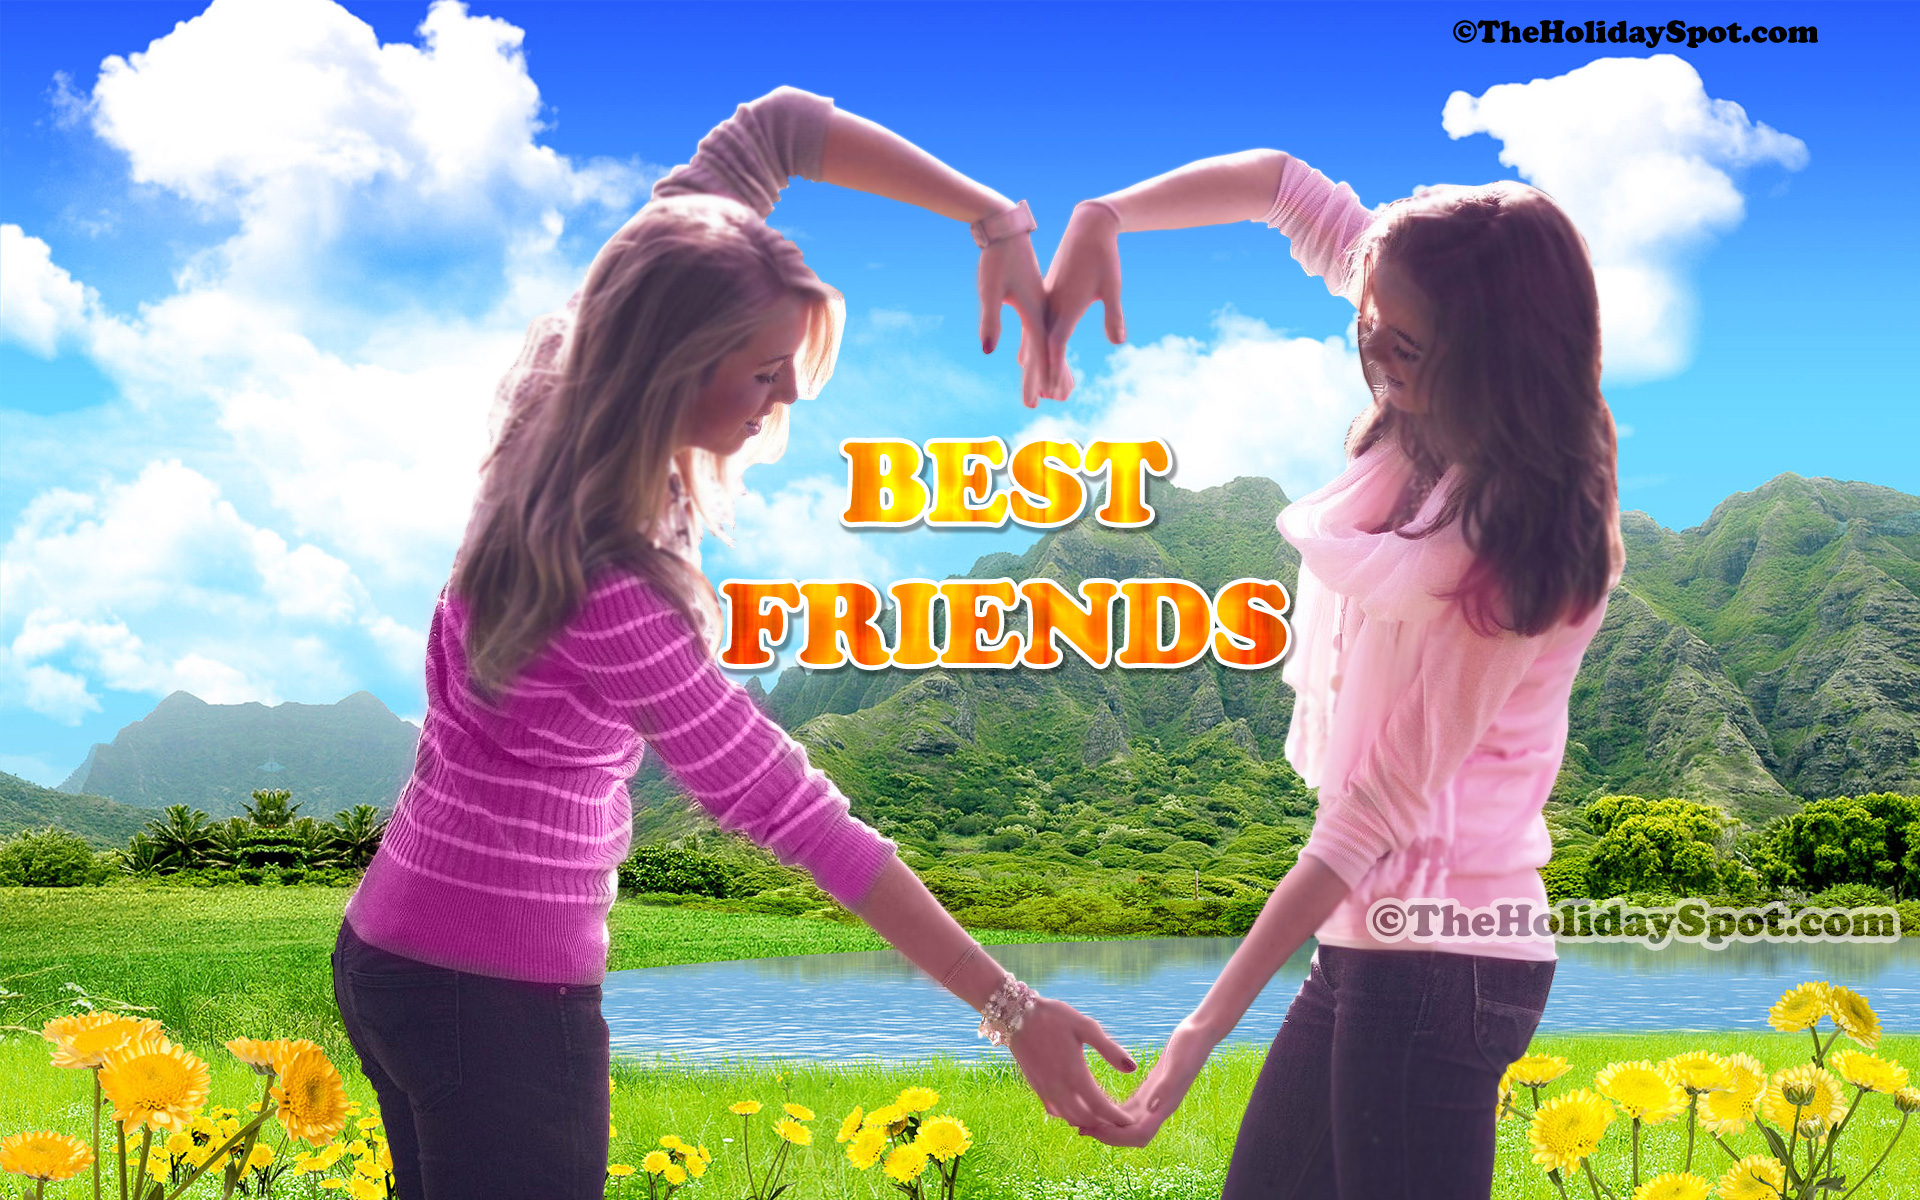 Friendship Day 2017 - SMS, Quotes, and Messages for Best Friend